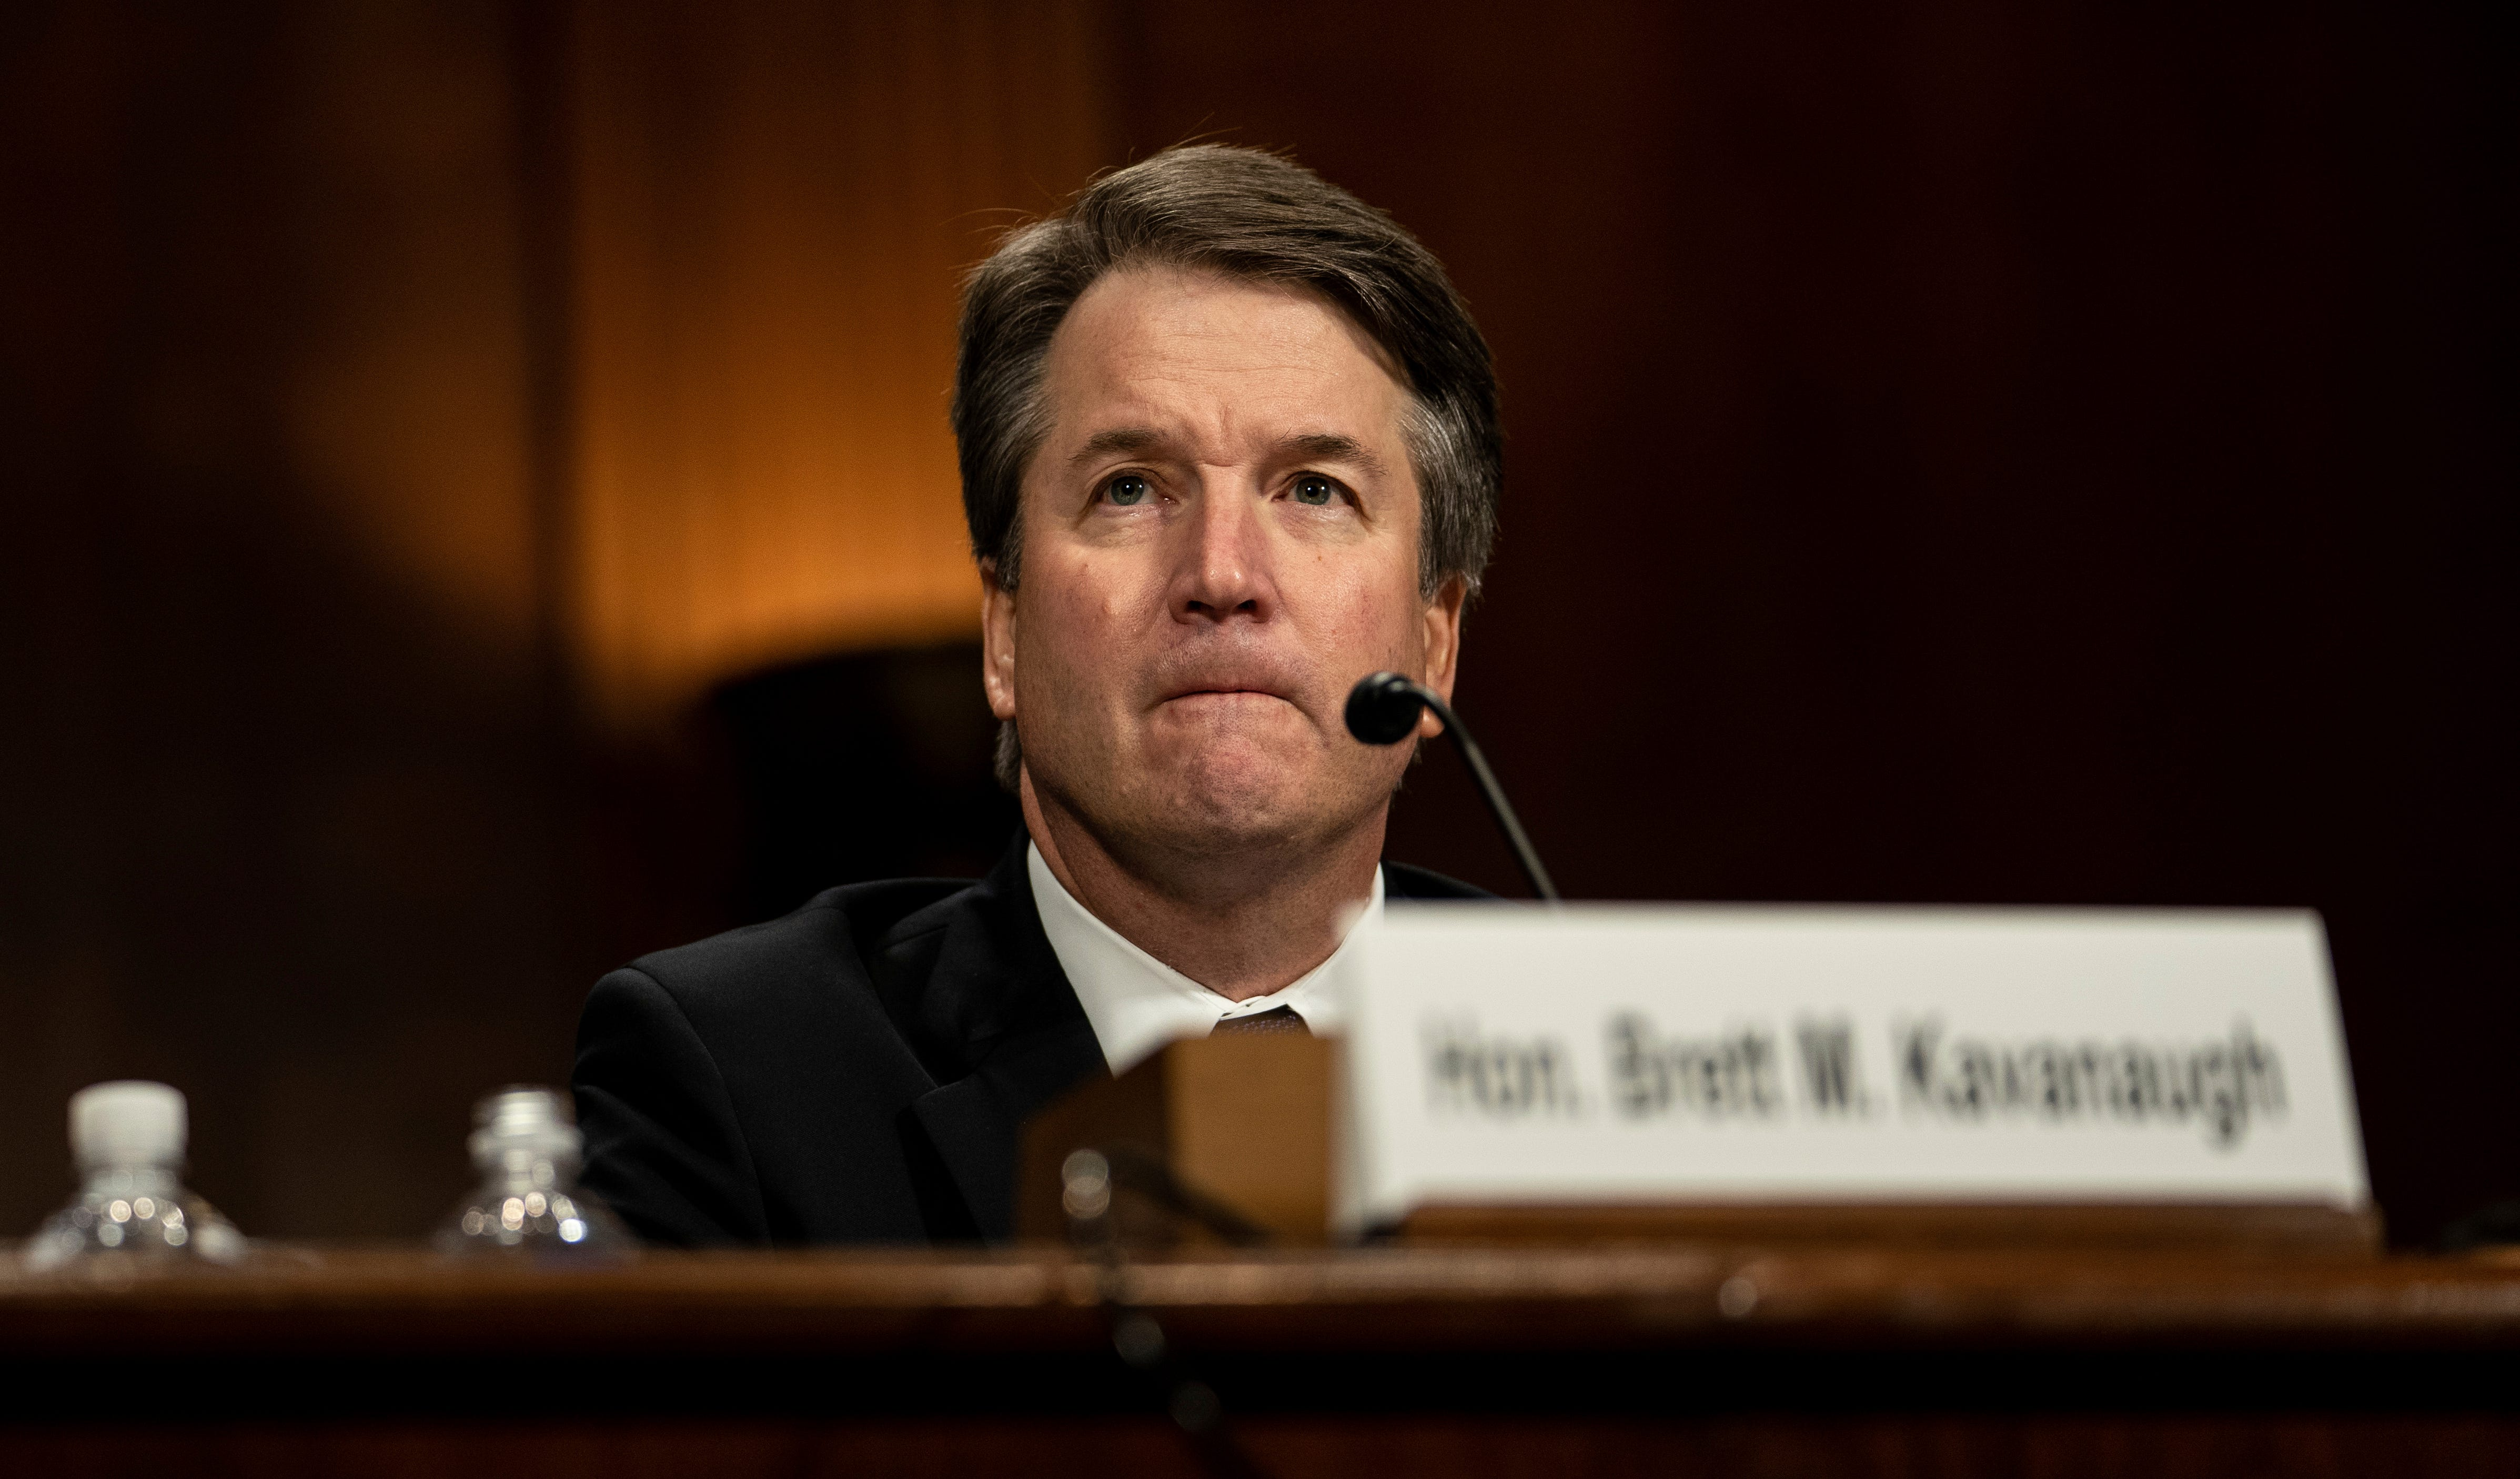 Supreme Court nominee Brett Kavanaugh testifies before the Senate Judiciary Committee on Capitol Hill, Thursday.